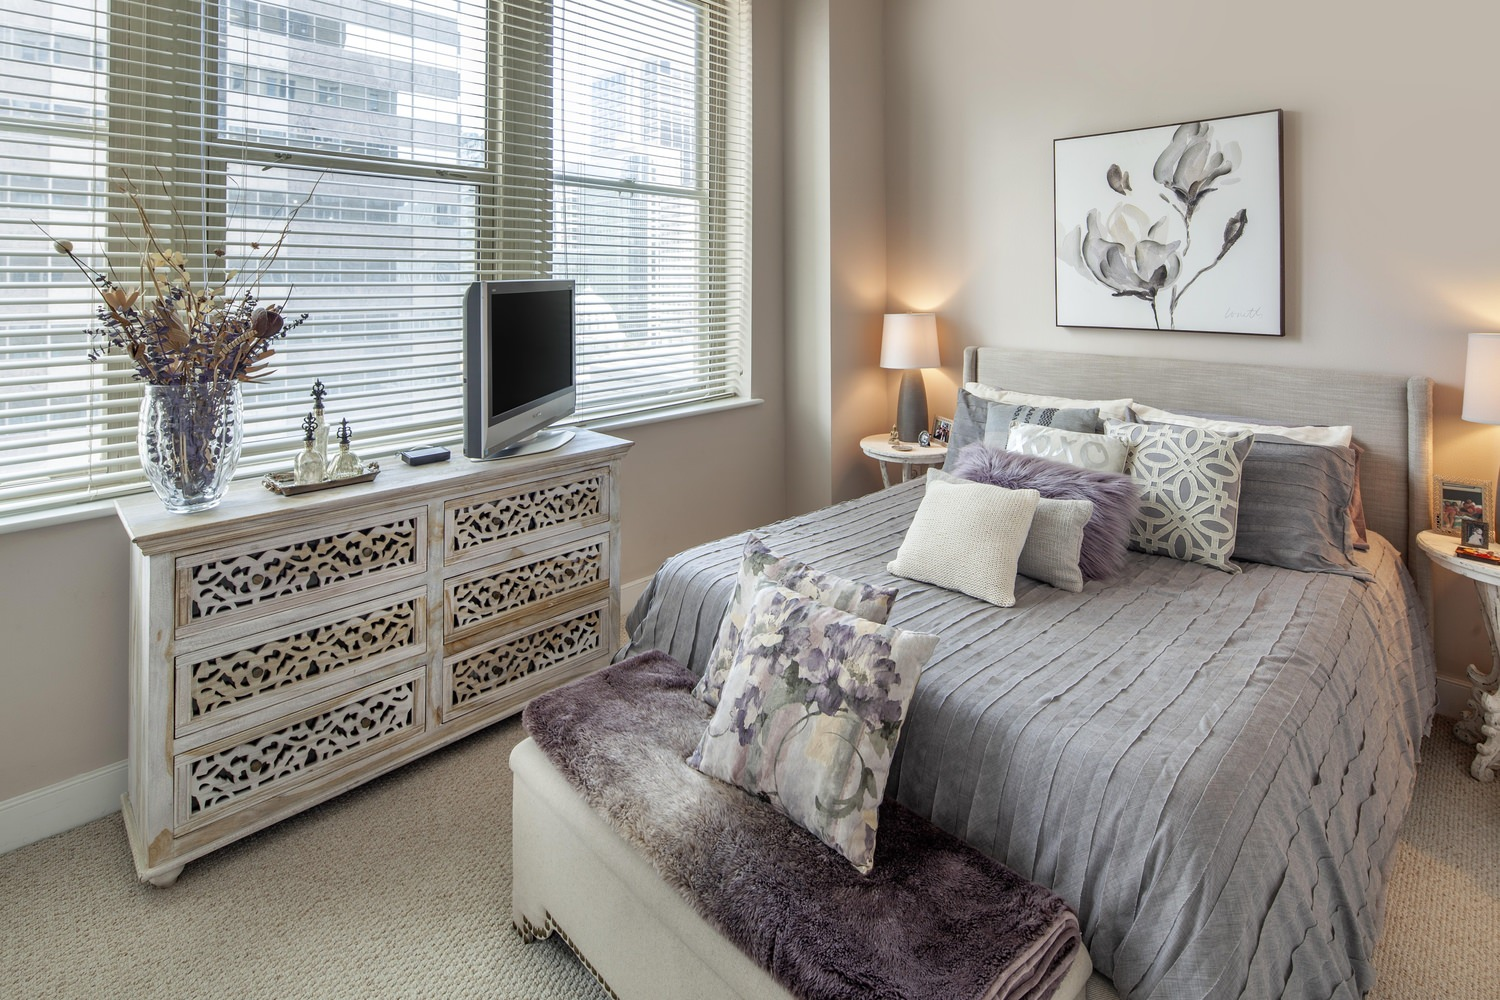 A bedroom that has a bed covered in grey sheets with a window showing the city outside.